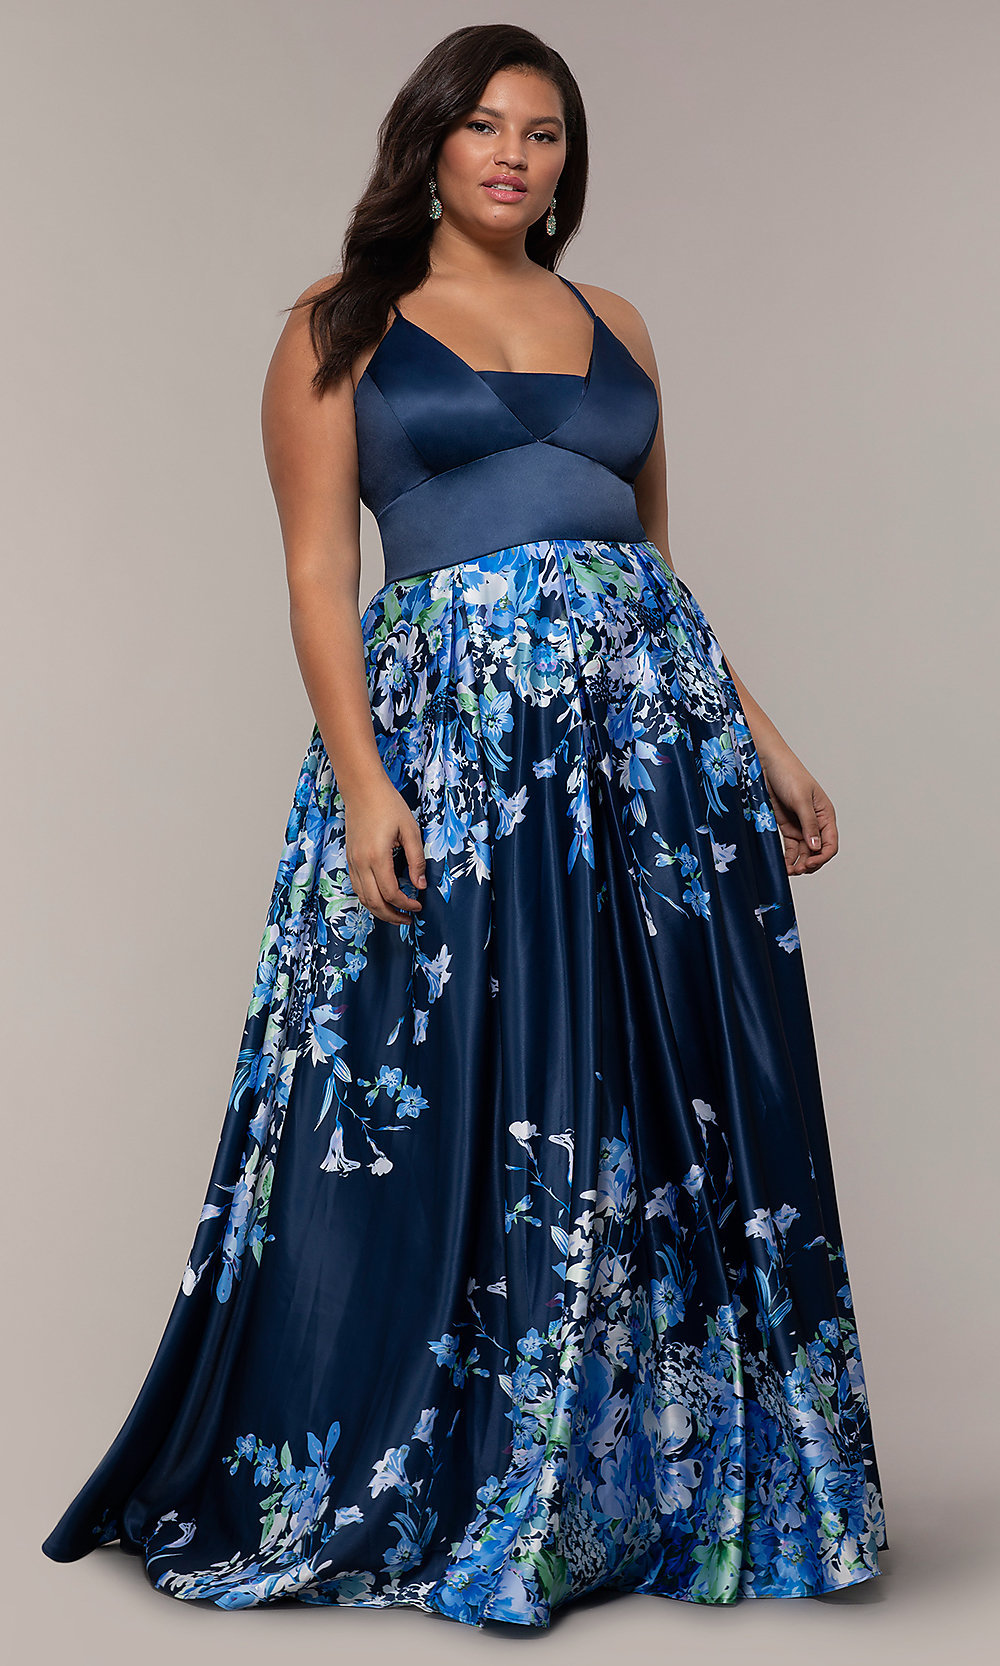 Navy Prom Dress with Floral Skirt